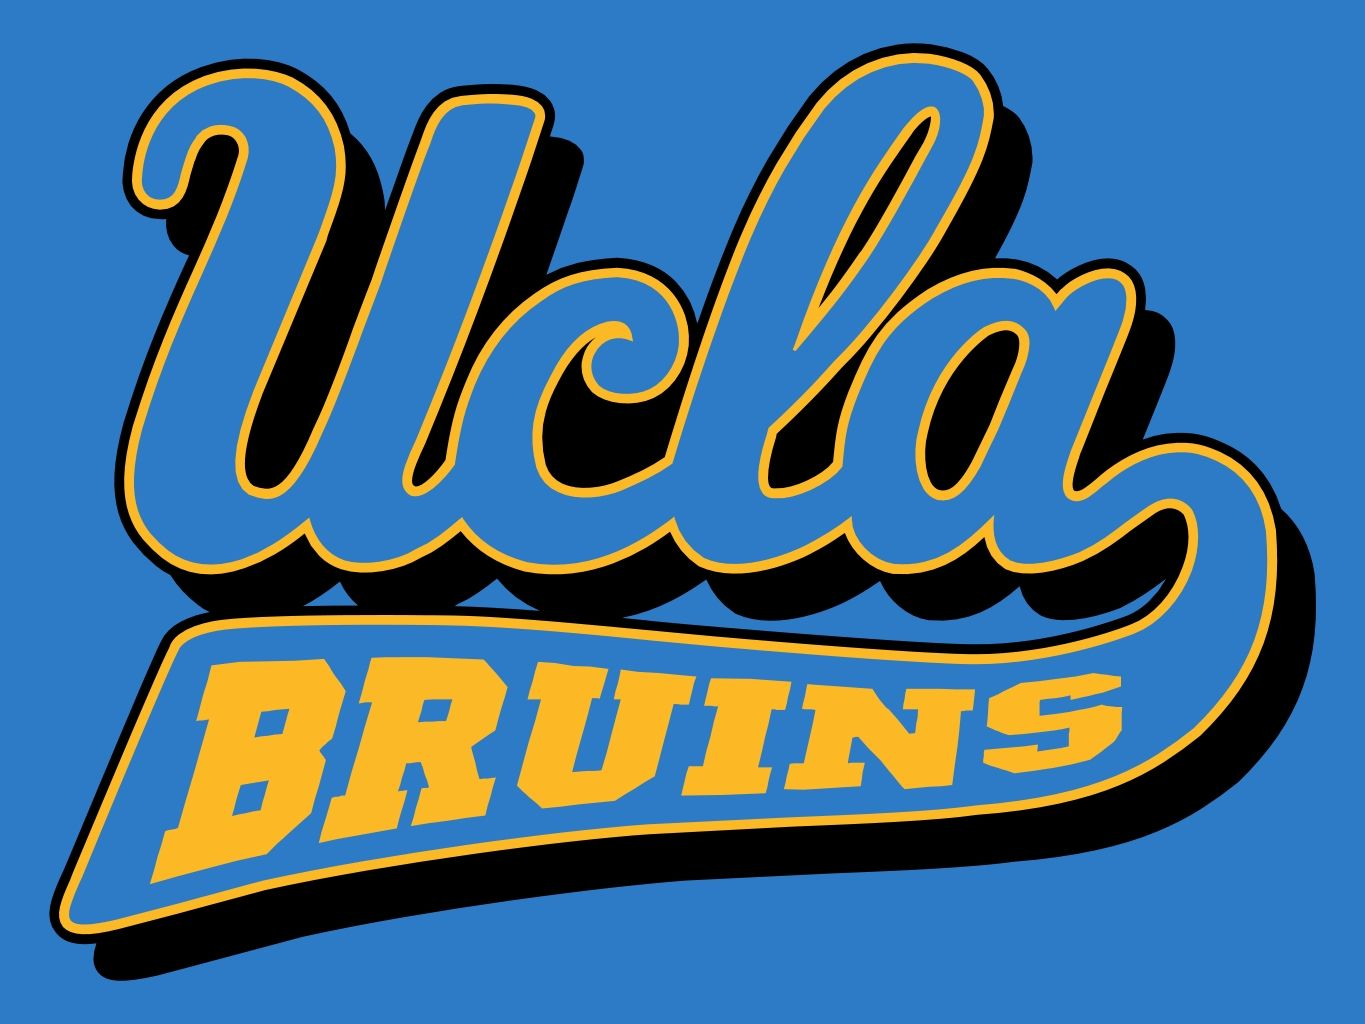 I m going to college ucla program clipart graphic transparent stock Watch UCLA Bruins Basketball Online & Streaming for Free ... graphic transparent stock